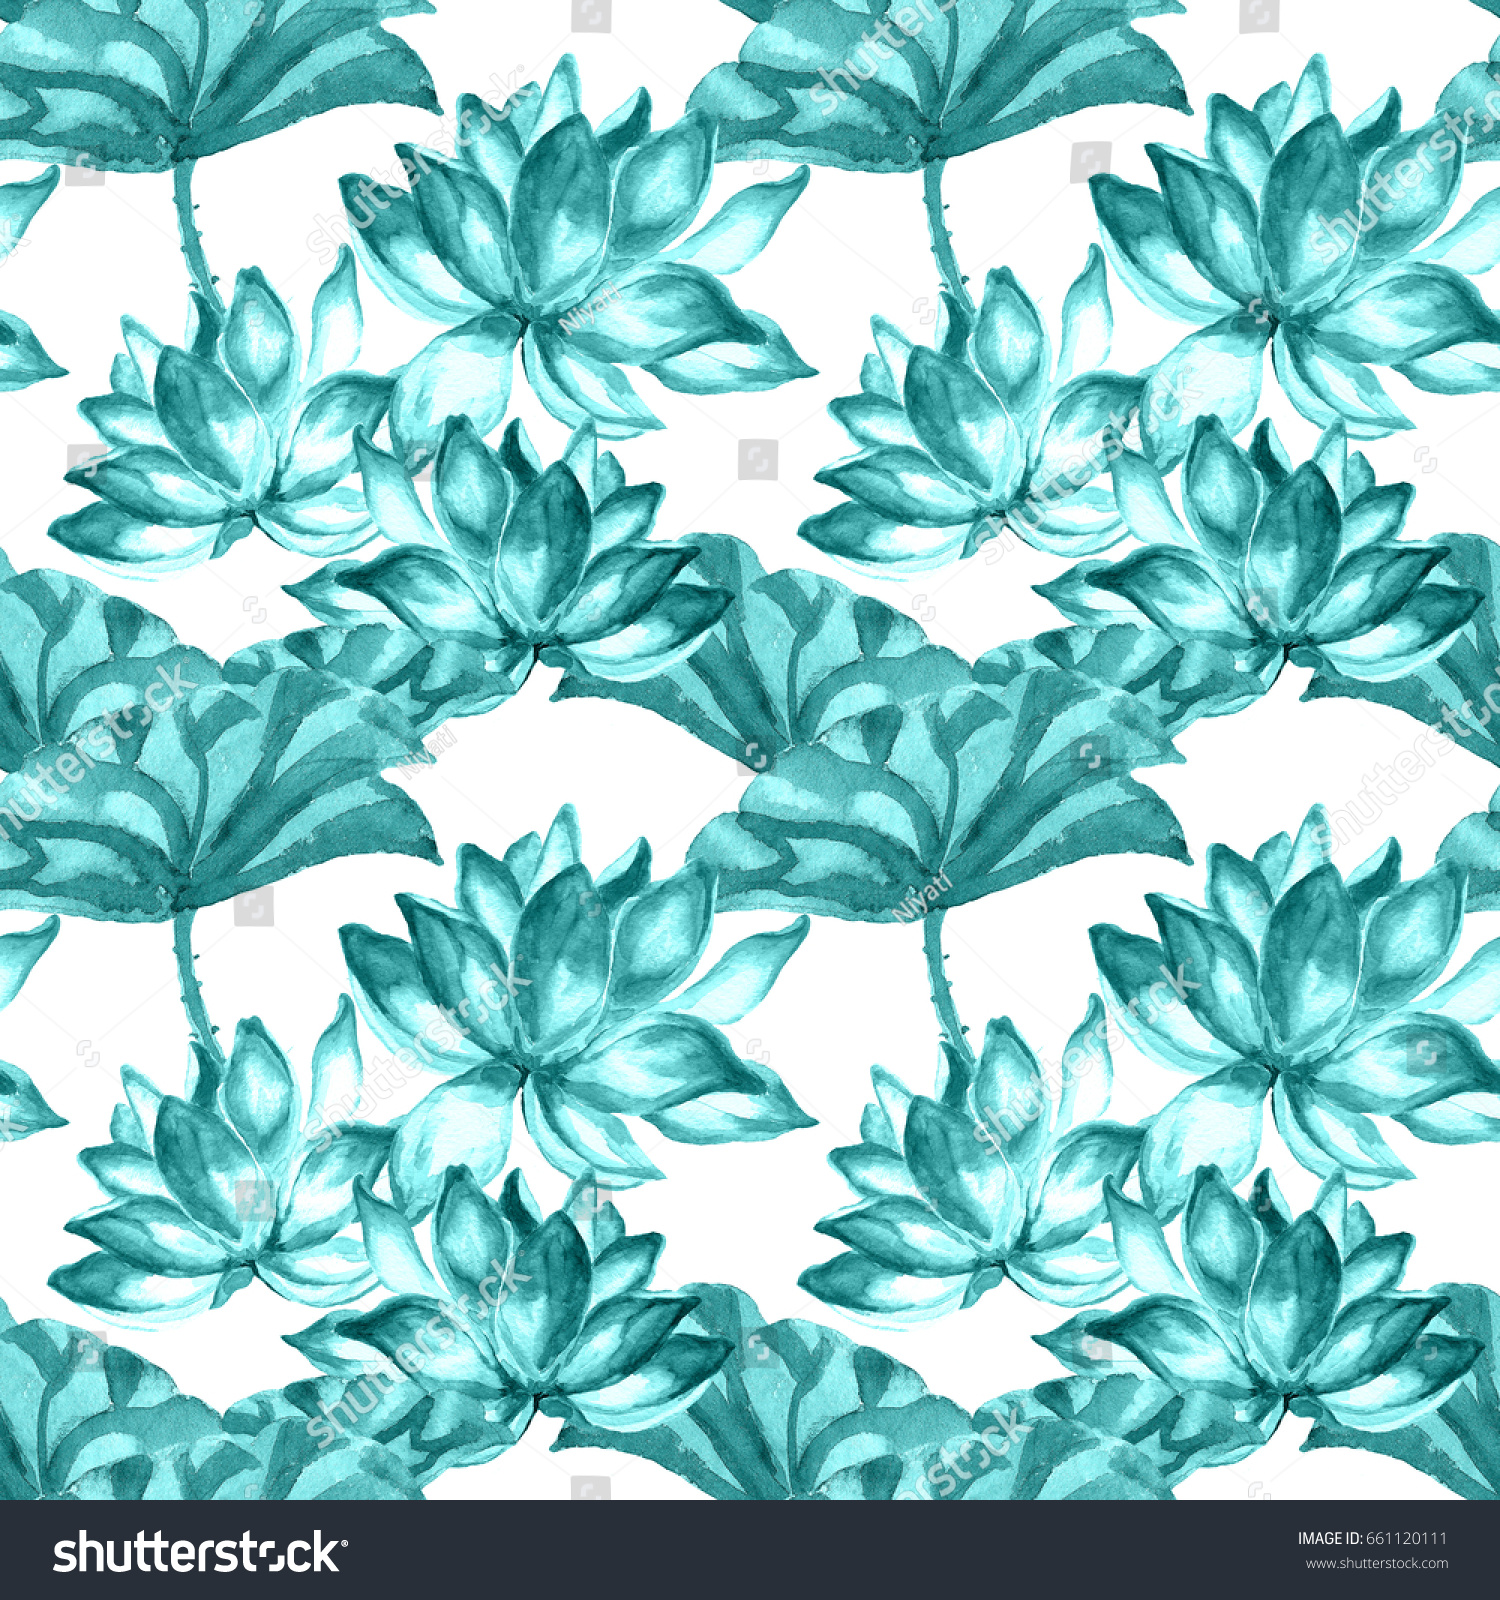 Watercolor Lotus Leaves And Flowerseen And Turquoise Tints On